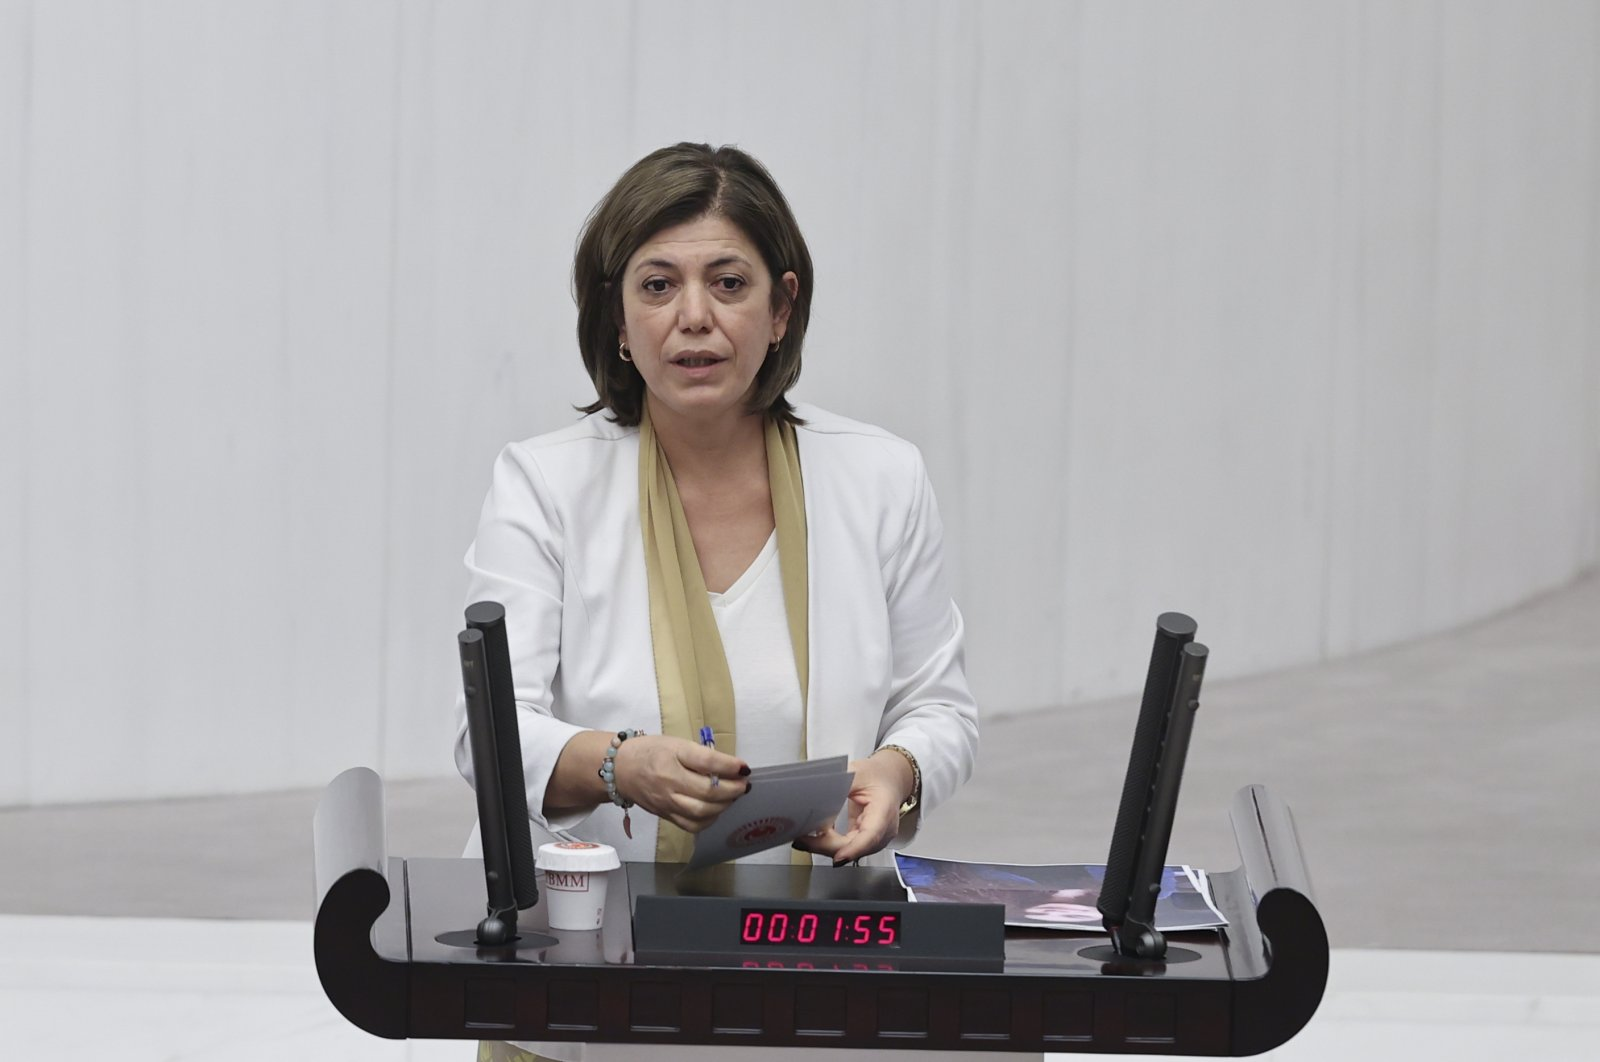 HDP Group Deputy Chairperson Meral Danış Beştaş speaks at the Turkish Parliament on Dec. 14, 2020. (AA Photo)